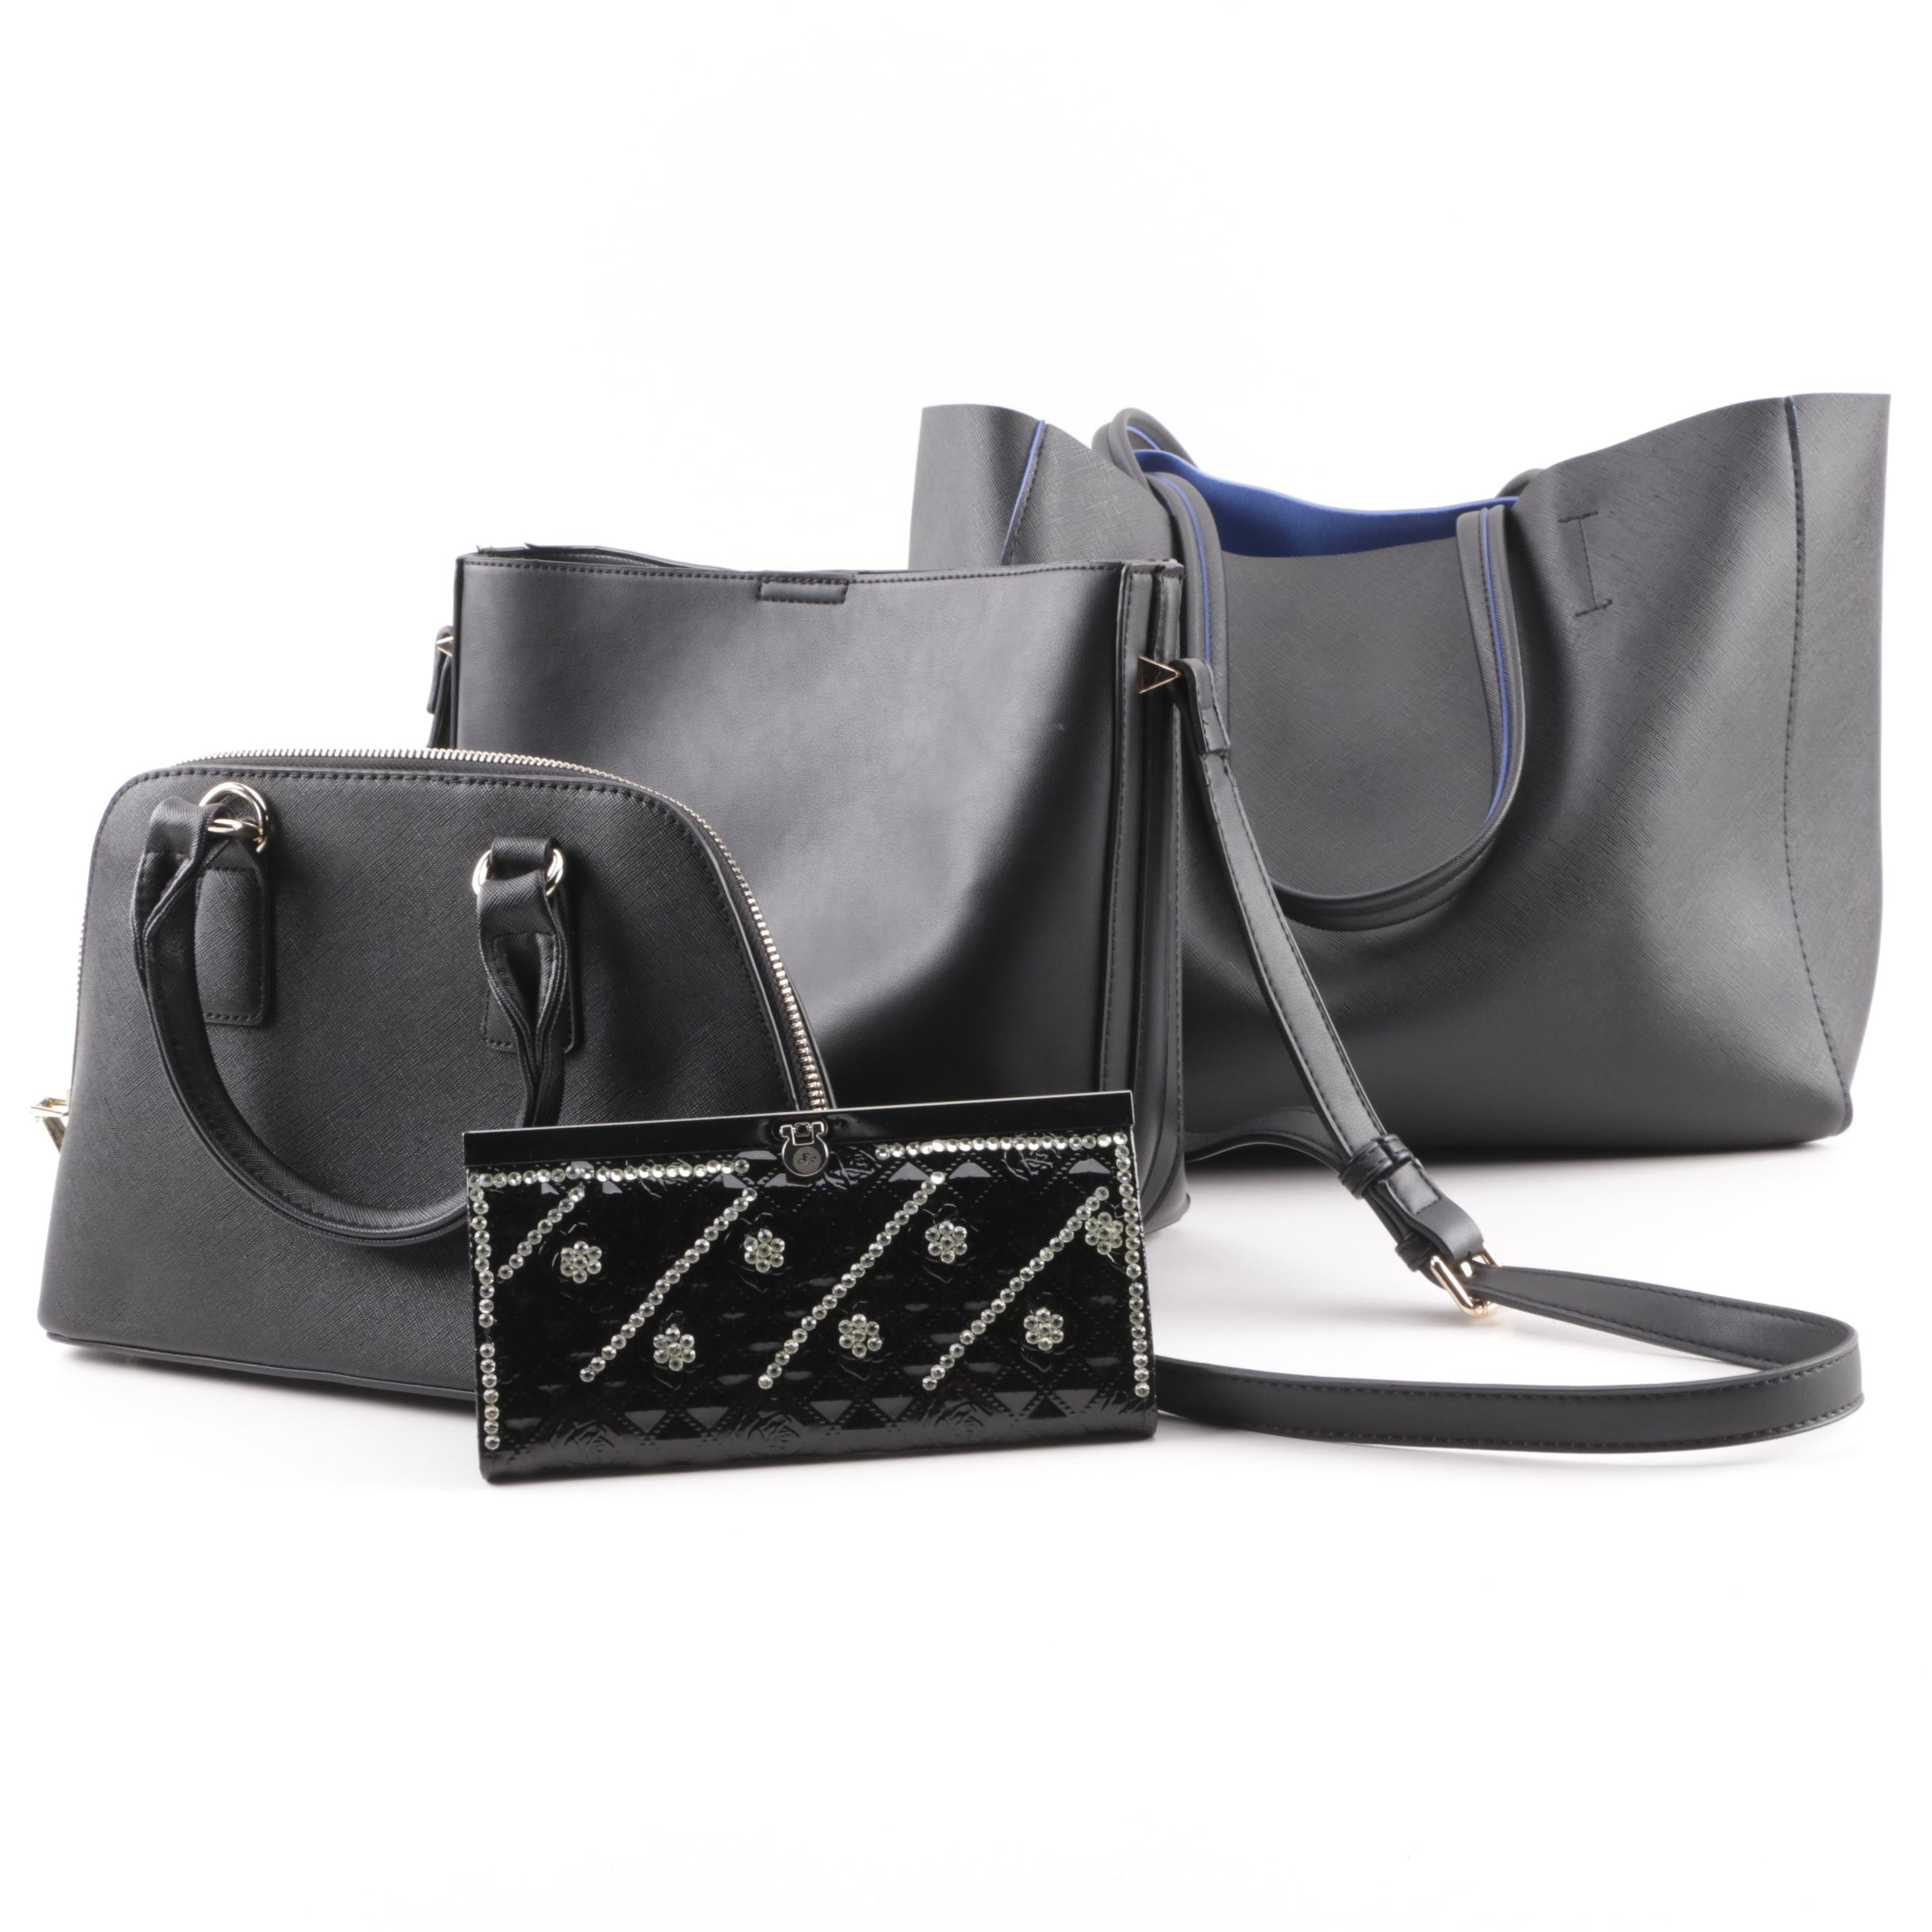 Black Faux Leather Tote, Satchel and Bucket Bag with Rhinestone Wallet Clutch